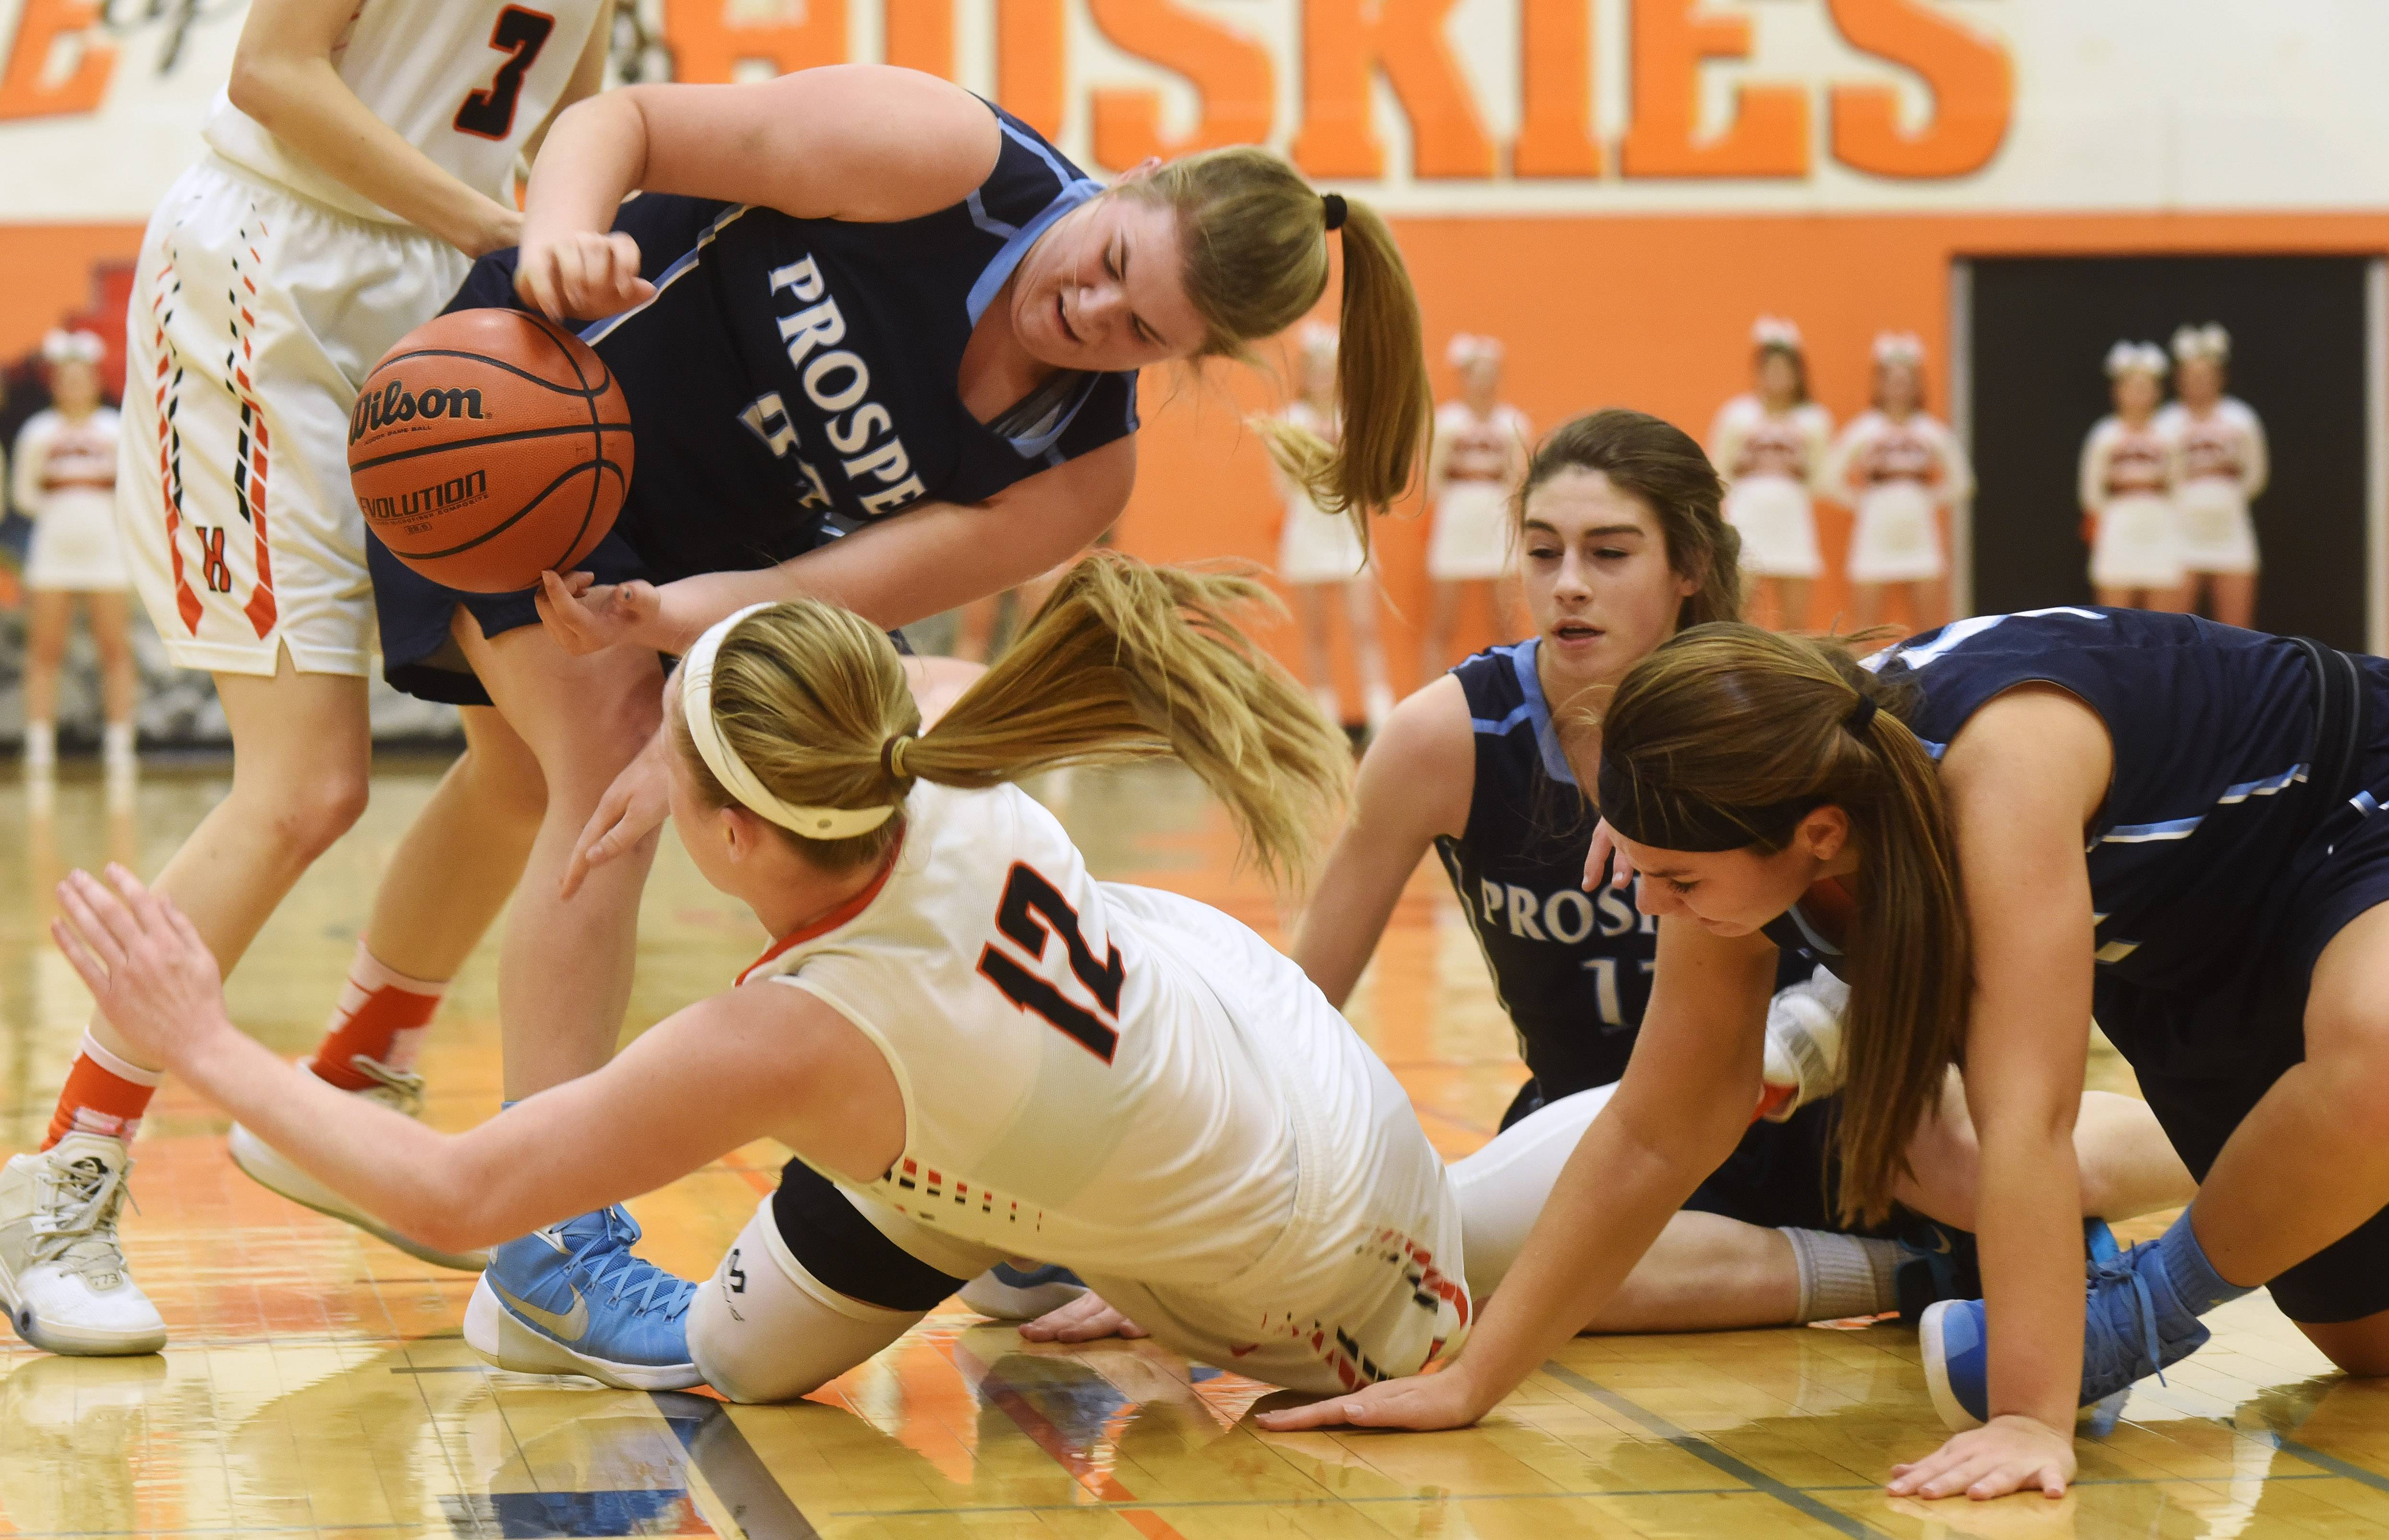 Prospect players, from left, Kendra Gancarz, Mandy Whithey and Margherite Pettenuzzo, as well as Hersey's Claire Gritt, try to gain control of a loose ball during Friday's game in Arlington Heights.